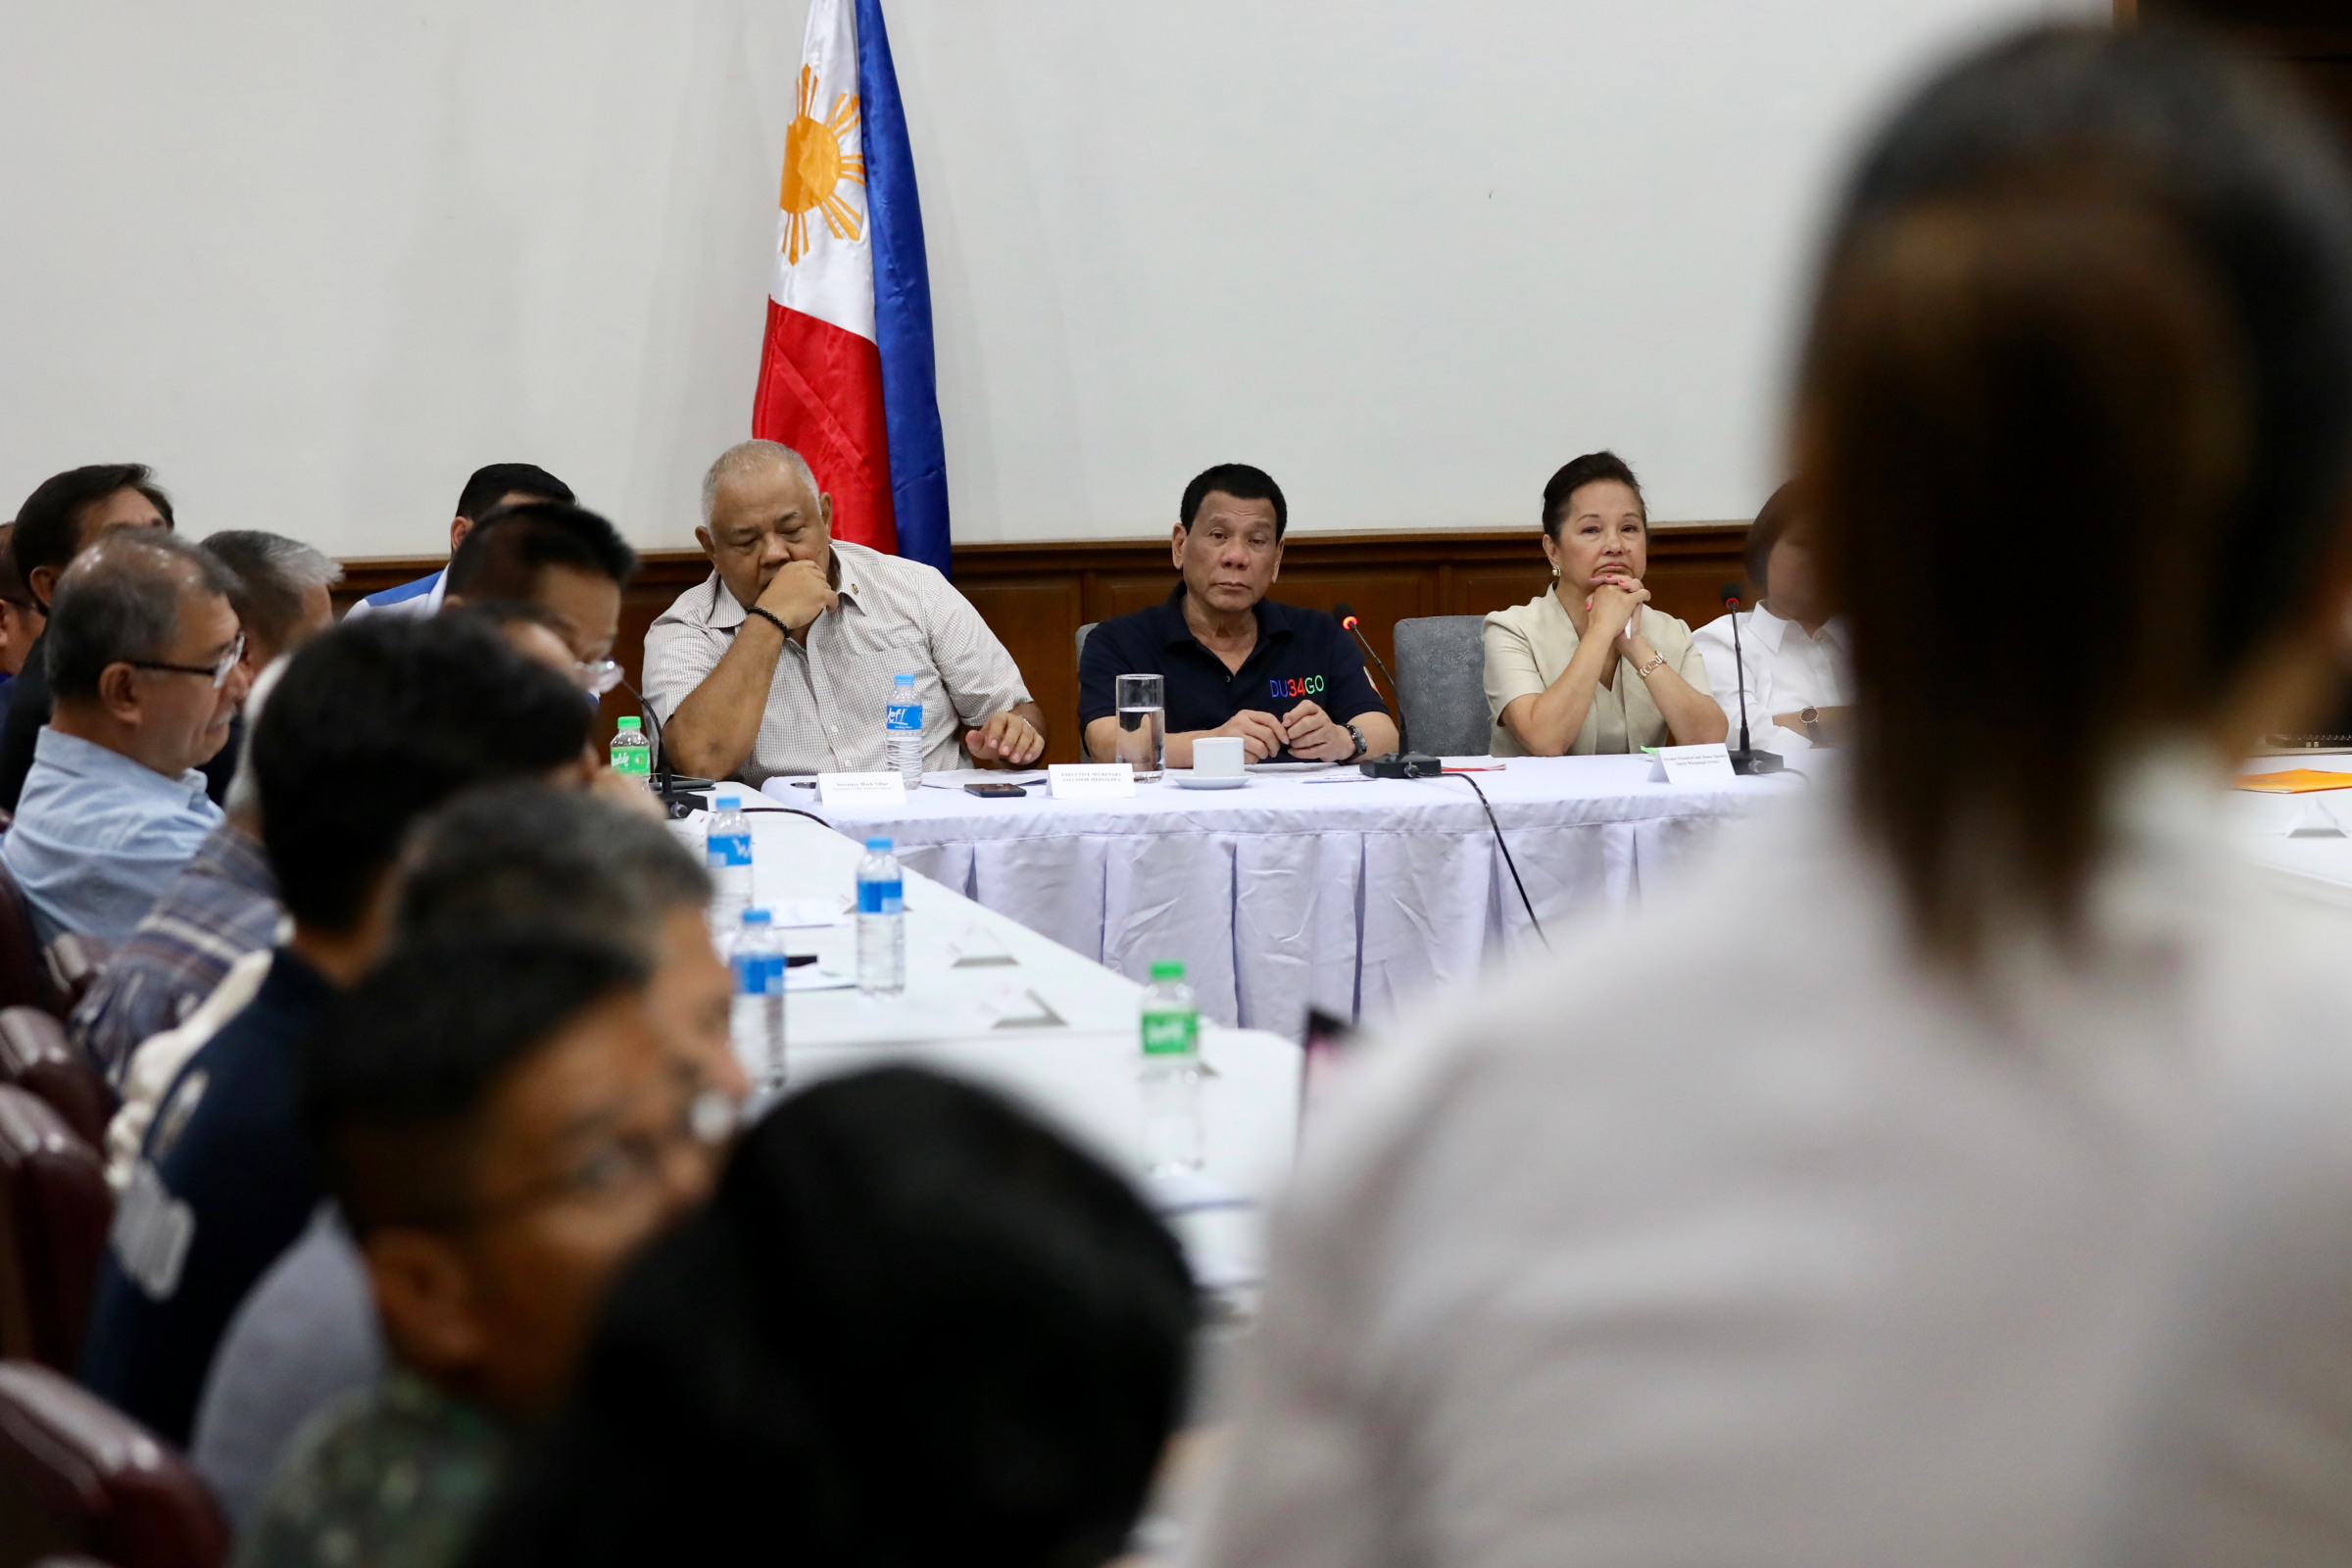 AFTERMATH. President Rodrigo Duterte presides over a situation briefing with members of his Cabinet and local government officials at the provincial capitol in San Fernando City, Pampanga. Malacau00f1ang photo